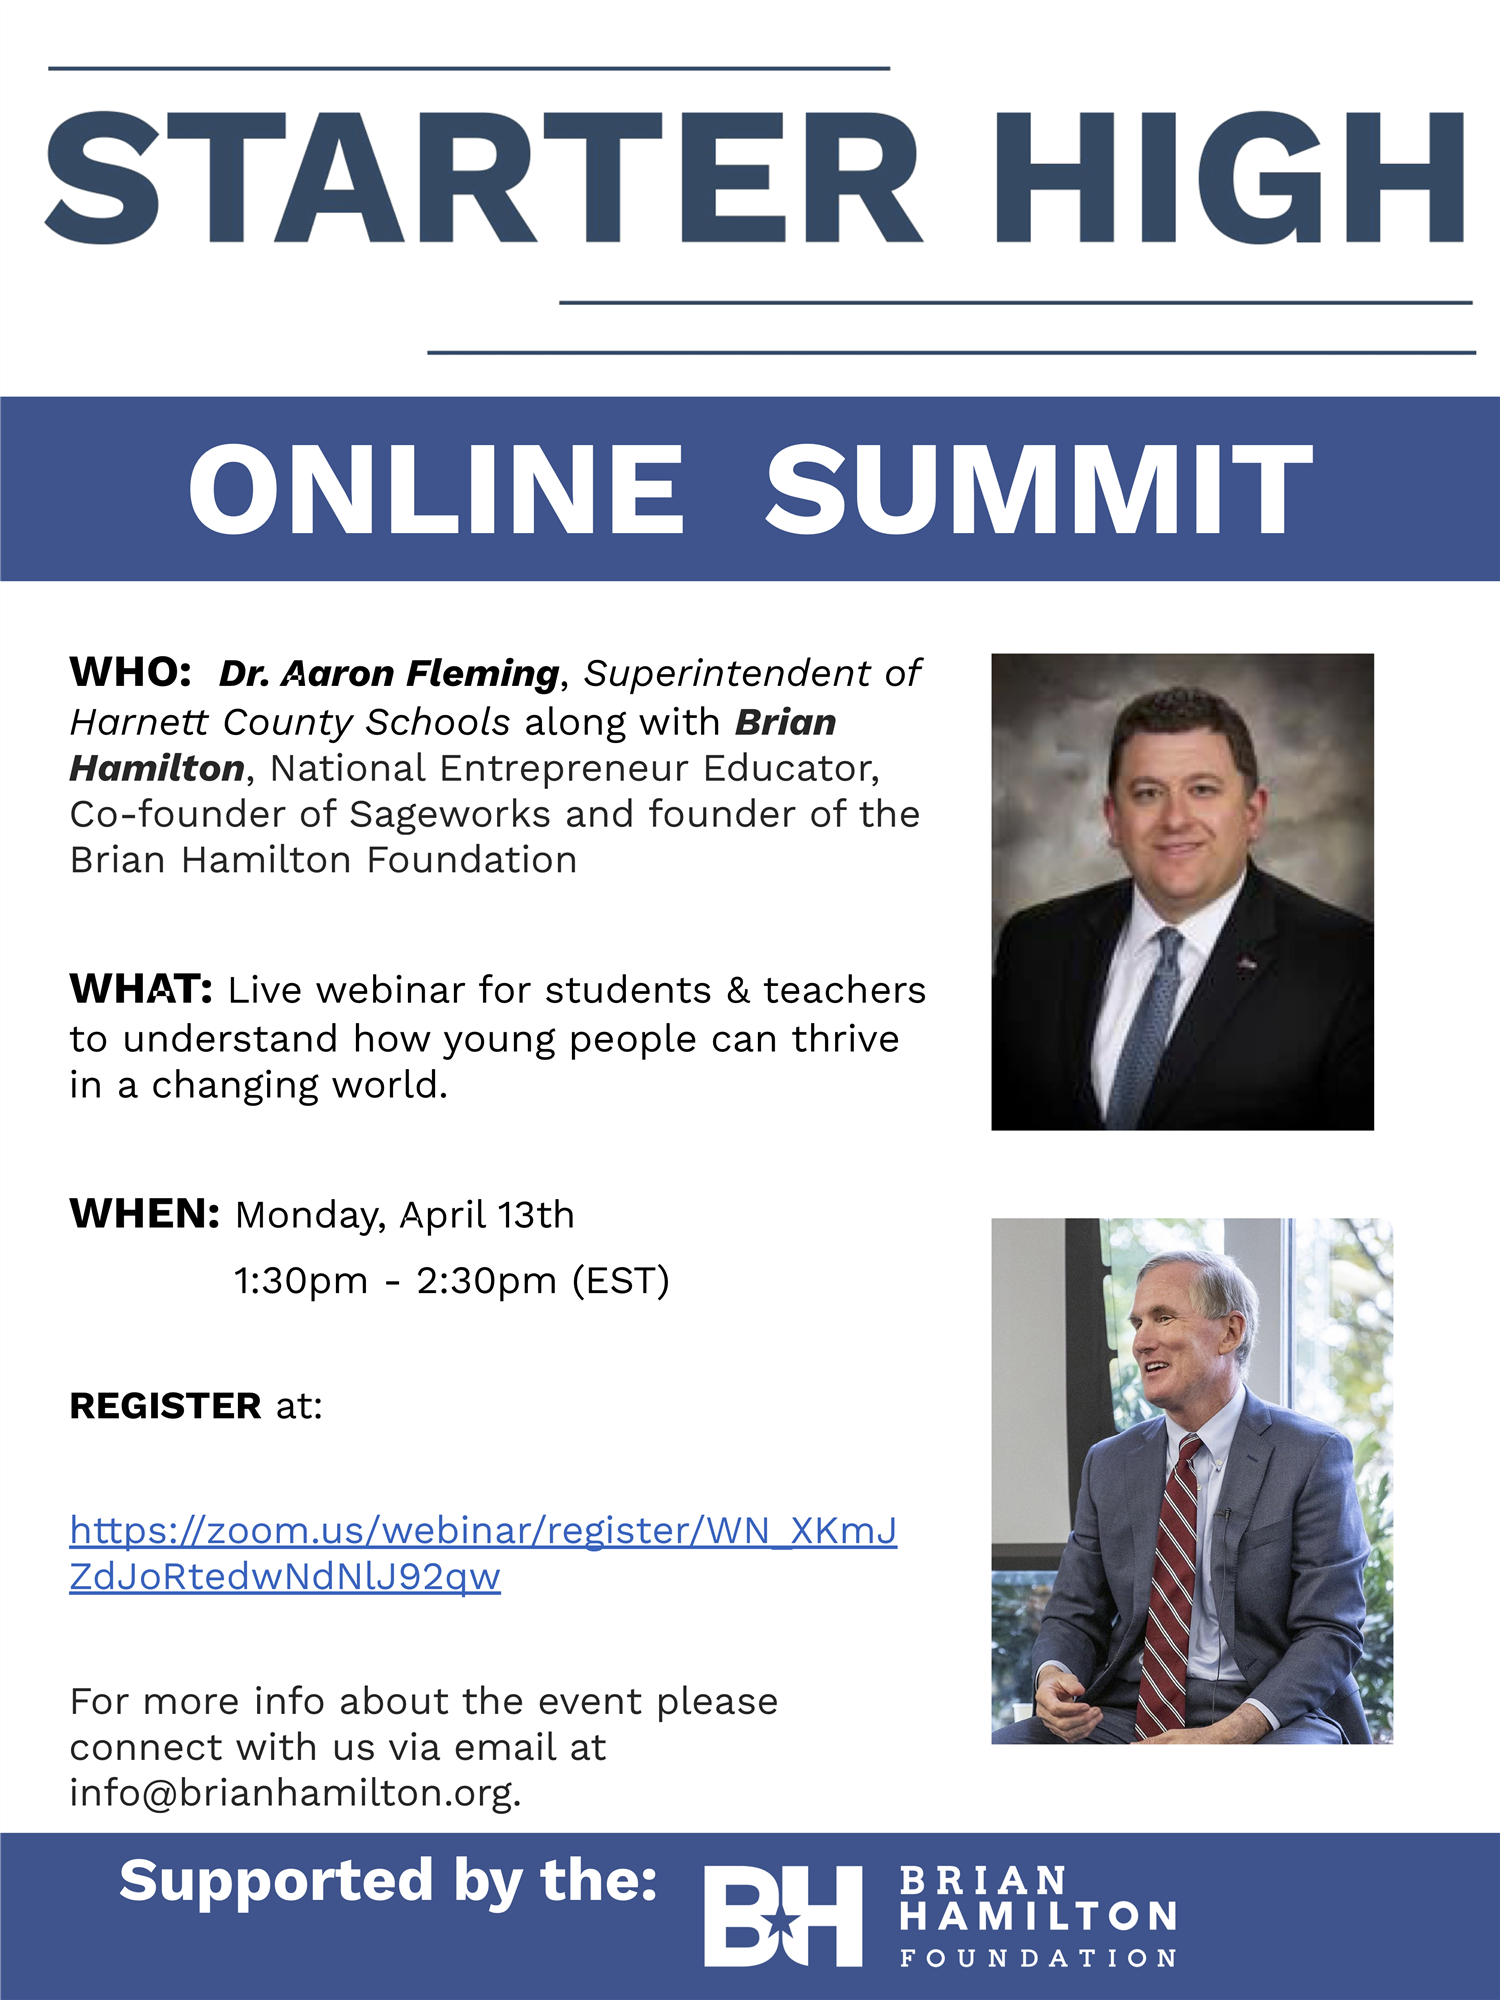 Online Summit with Dr. Aaron L. Fleming, Superintendent of Schools